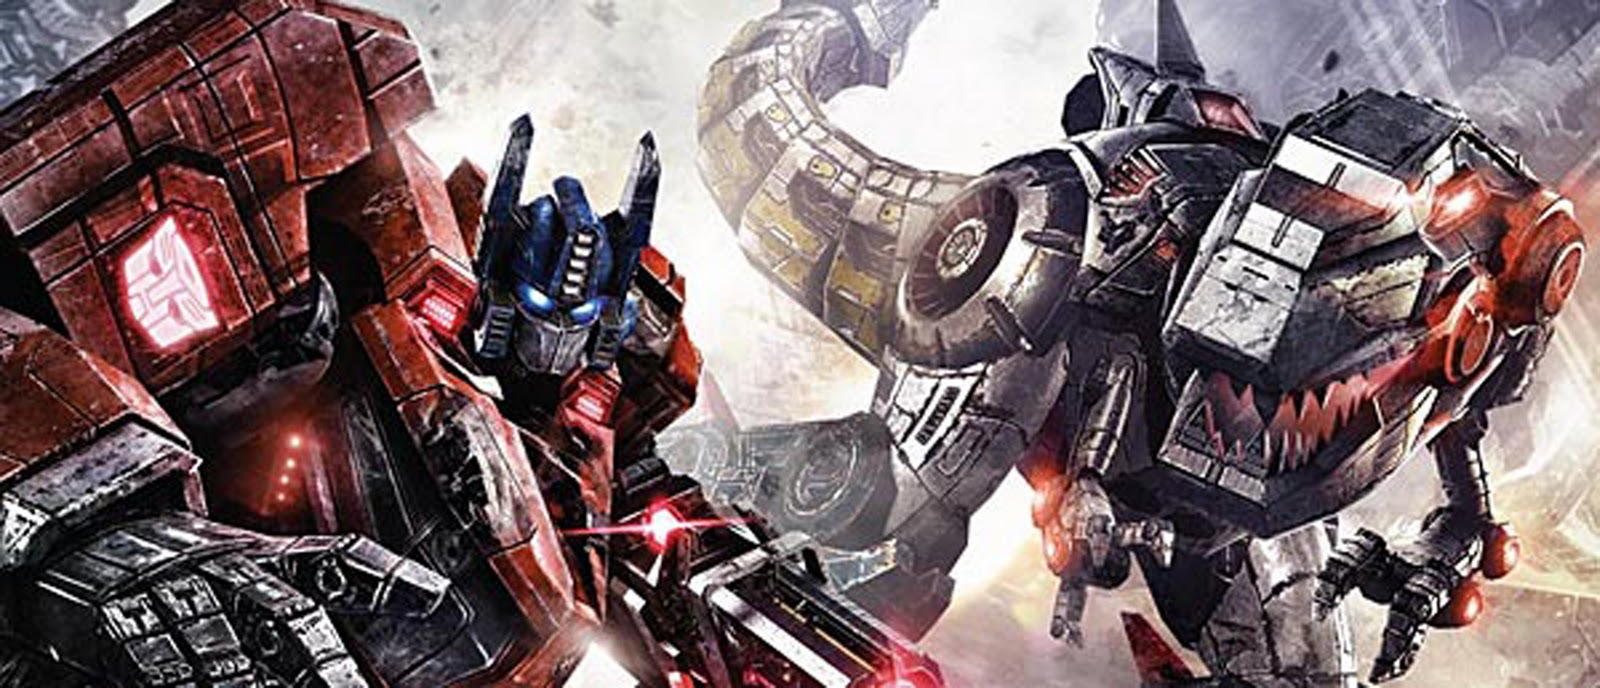 TRANSFORMERS FALL OF CYBERTRON OFFICIAL CONCEPT ART POSTERS 1600x688